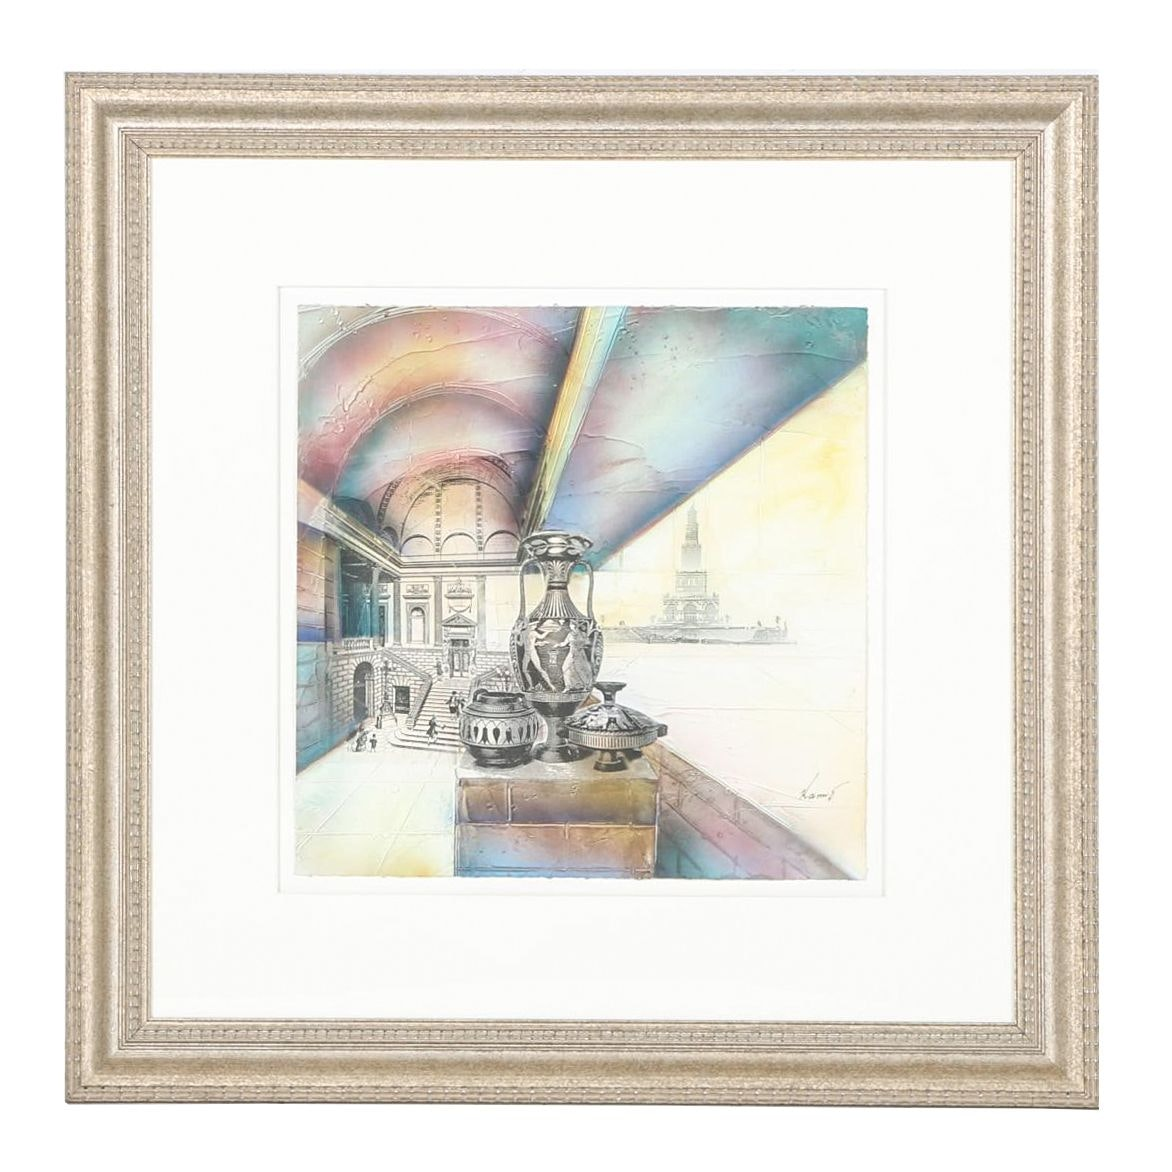 Framed Mixed Media Lithograph